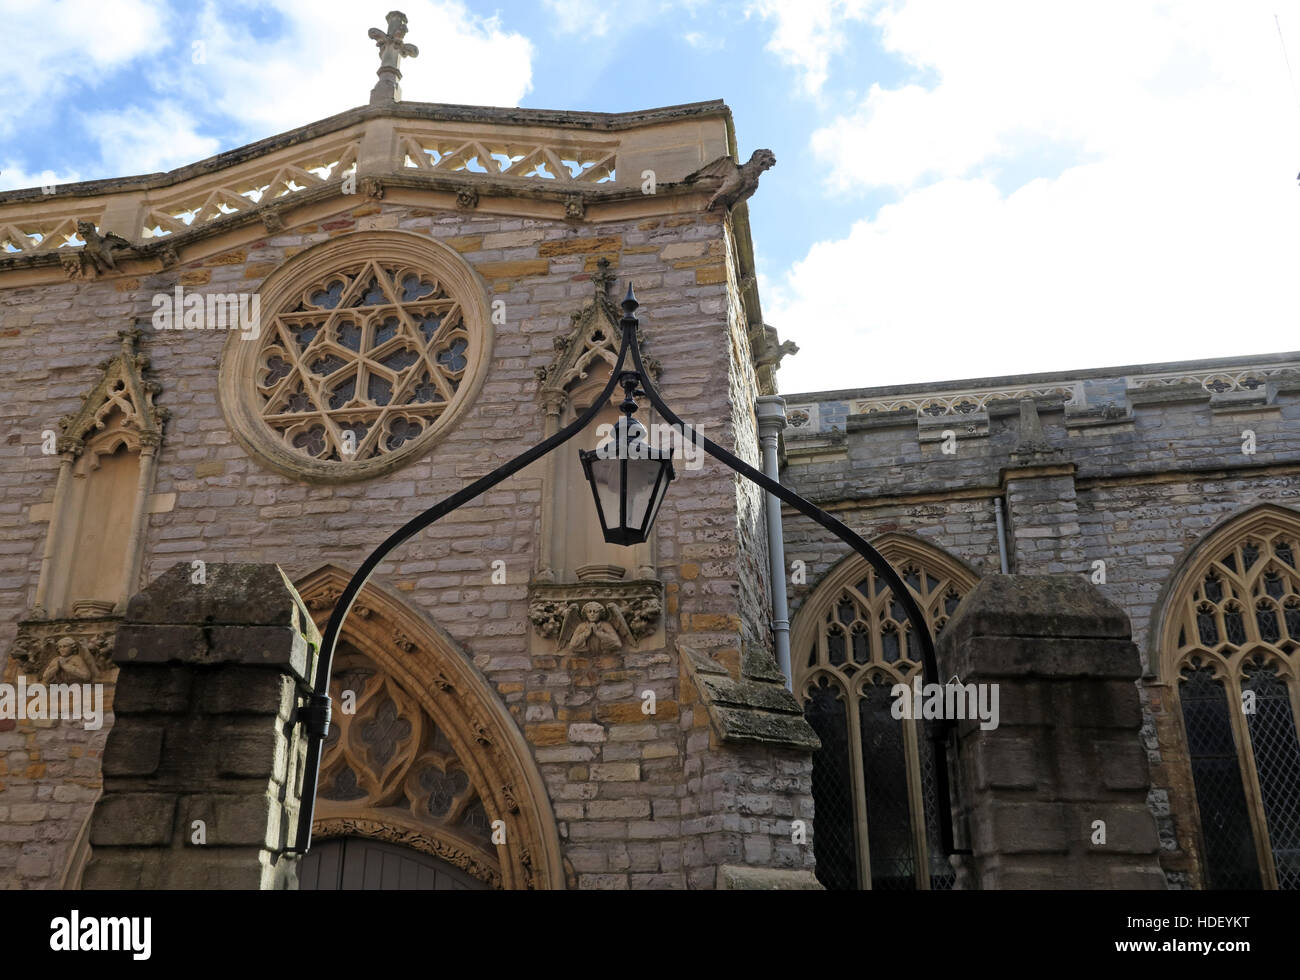 St Marys Church,Bridgwater,Sedgemoor,Somerset,England,UK - Stock Image